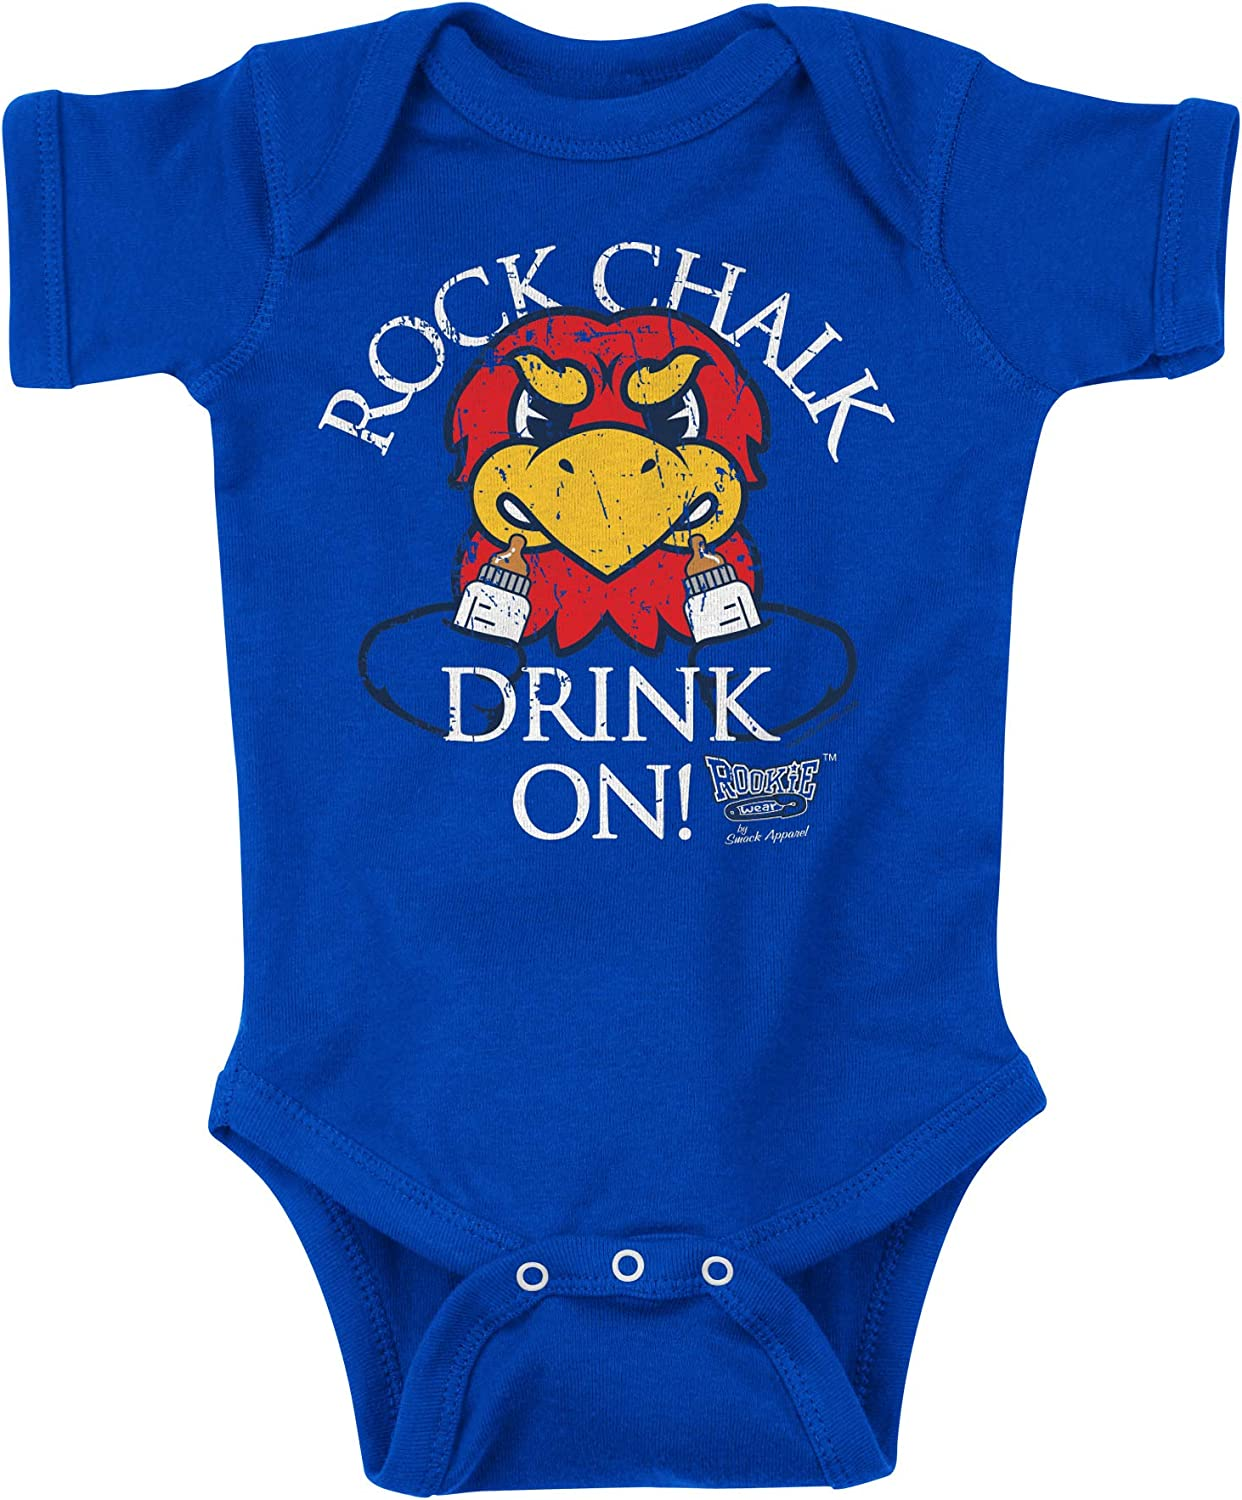 Royal Onesie NB-18M Rookie Wear By Smack Apparel Kansas Basketball Fans or Toddler Tee Rock Chalk Drink On 2T-4T